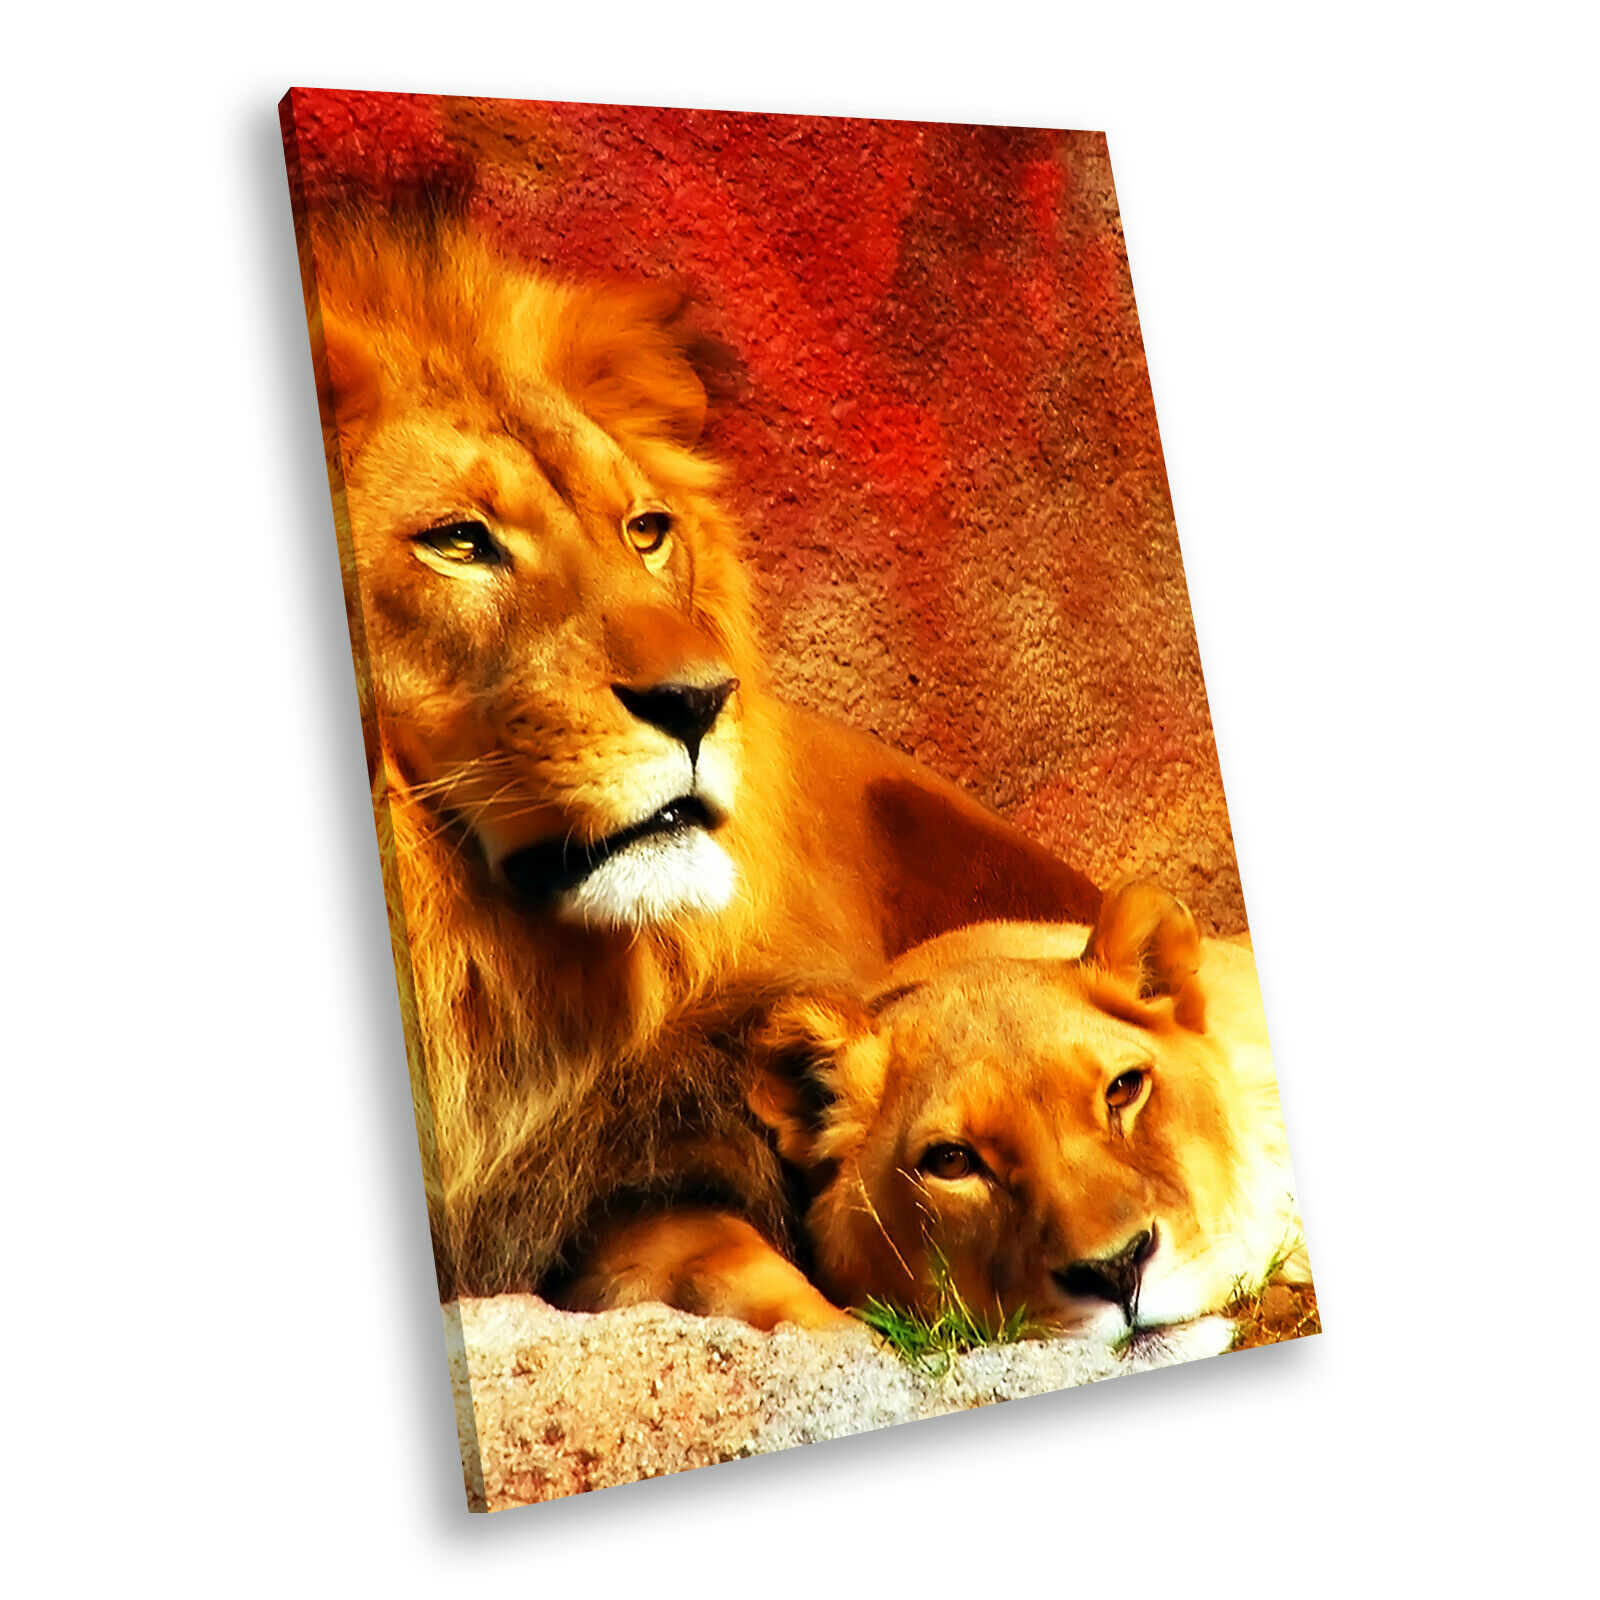 rot Gelb Lion braun Portrait Animal Canvas Wall Art Large Picture Prints